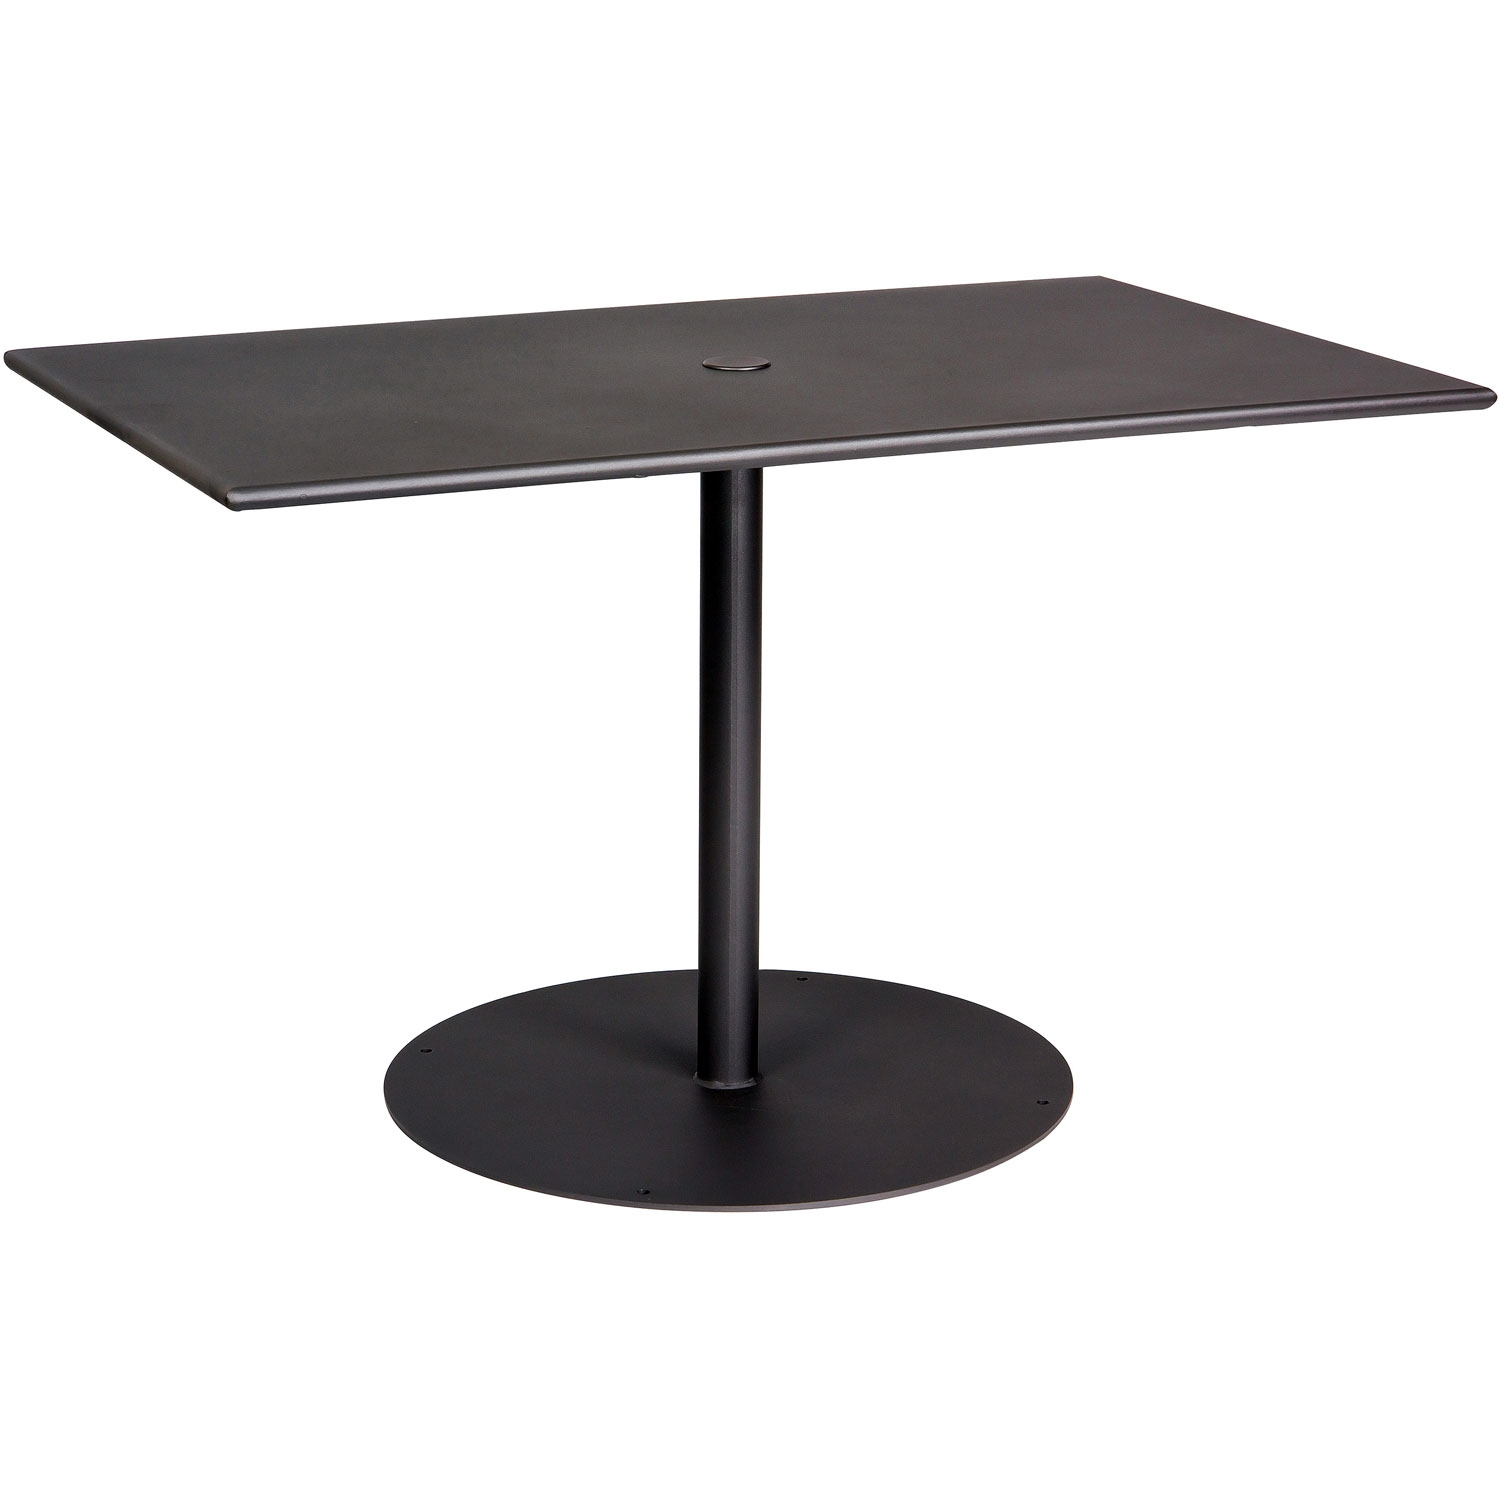 Buy The 48 X 30 Rectangle Iron Table For Your Outdoor Living Area Online